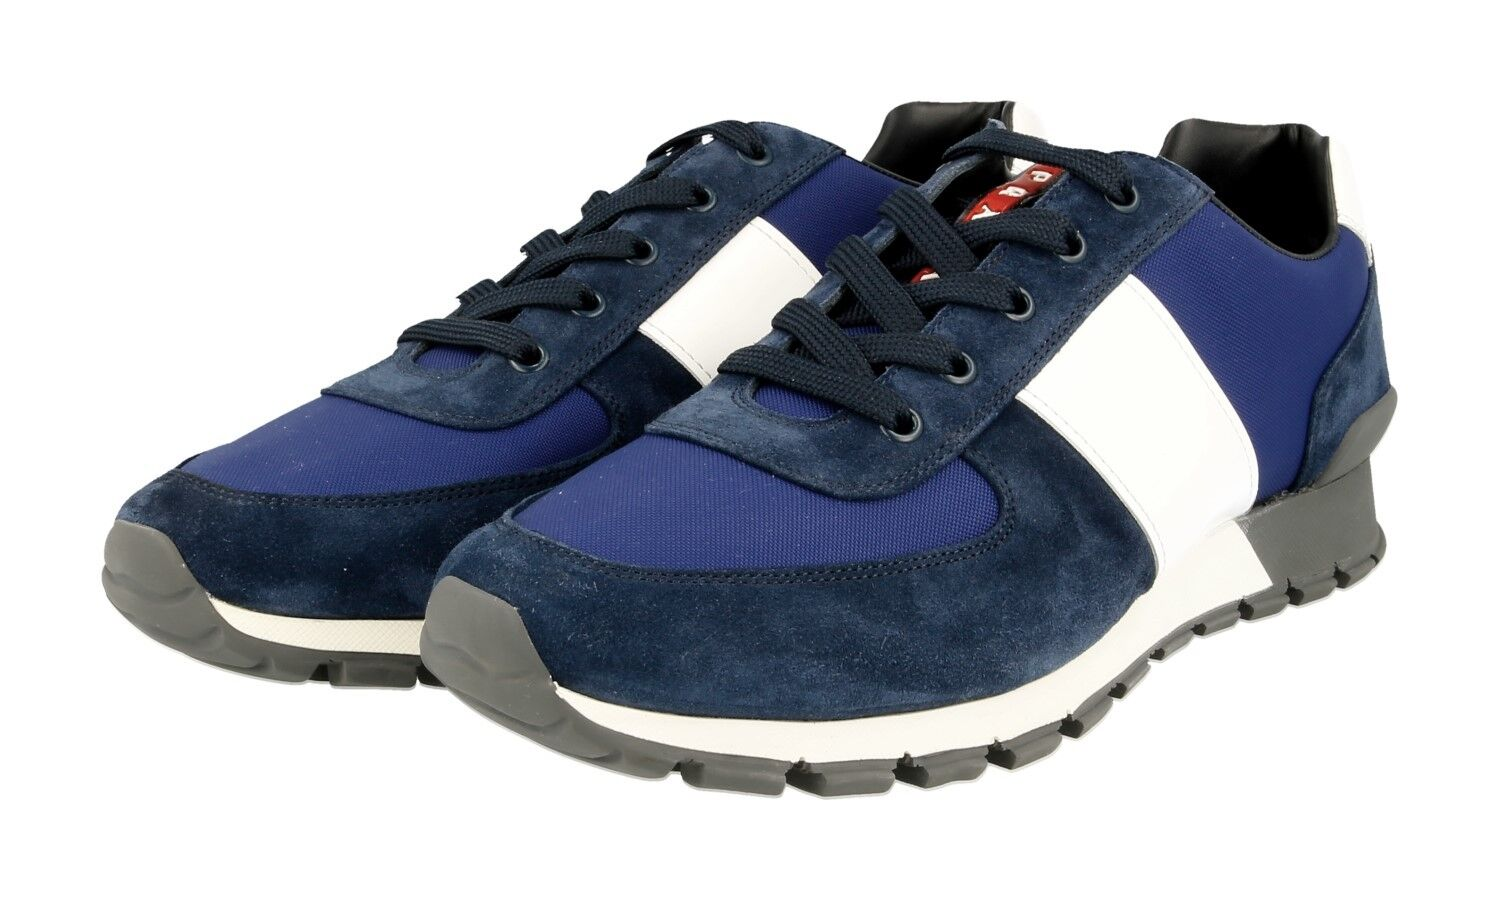 AUTH PRADA MATCHRACE SNEAKERS SHOES 4E2718 blueE SUEDE NEW US 10